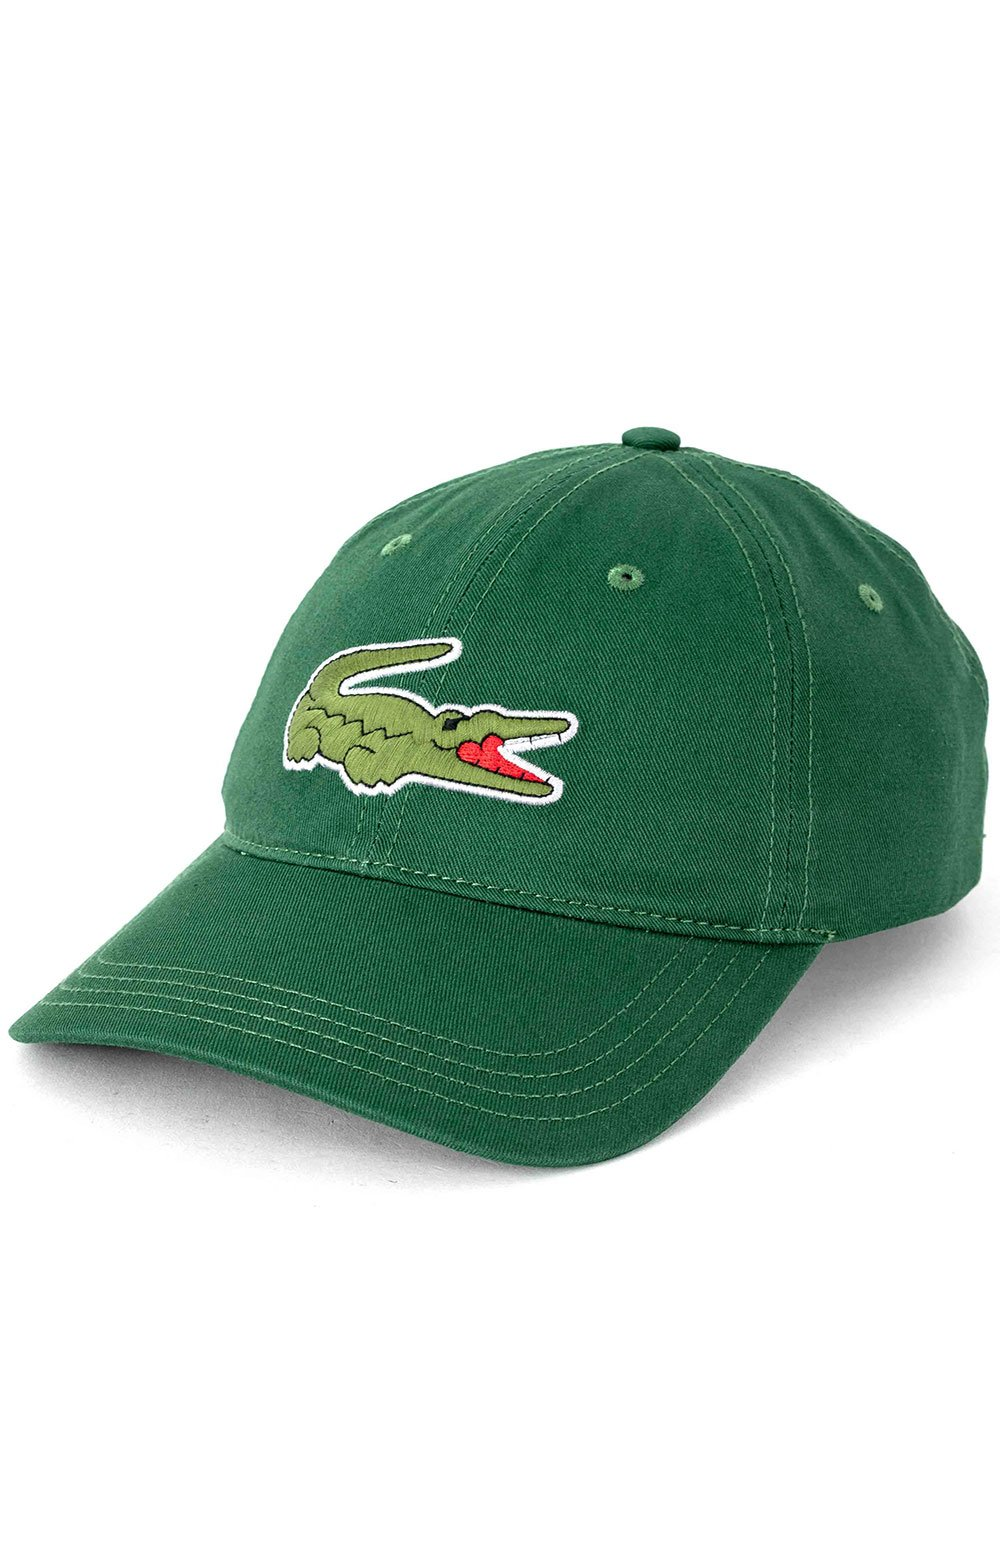 Big Croc Twill Leather Strap Cap - Green